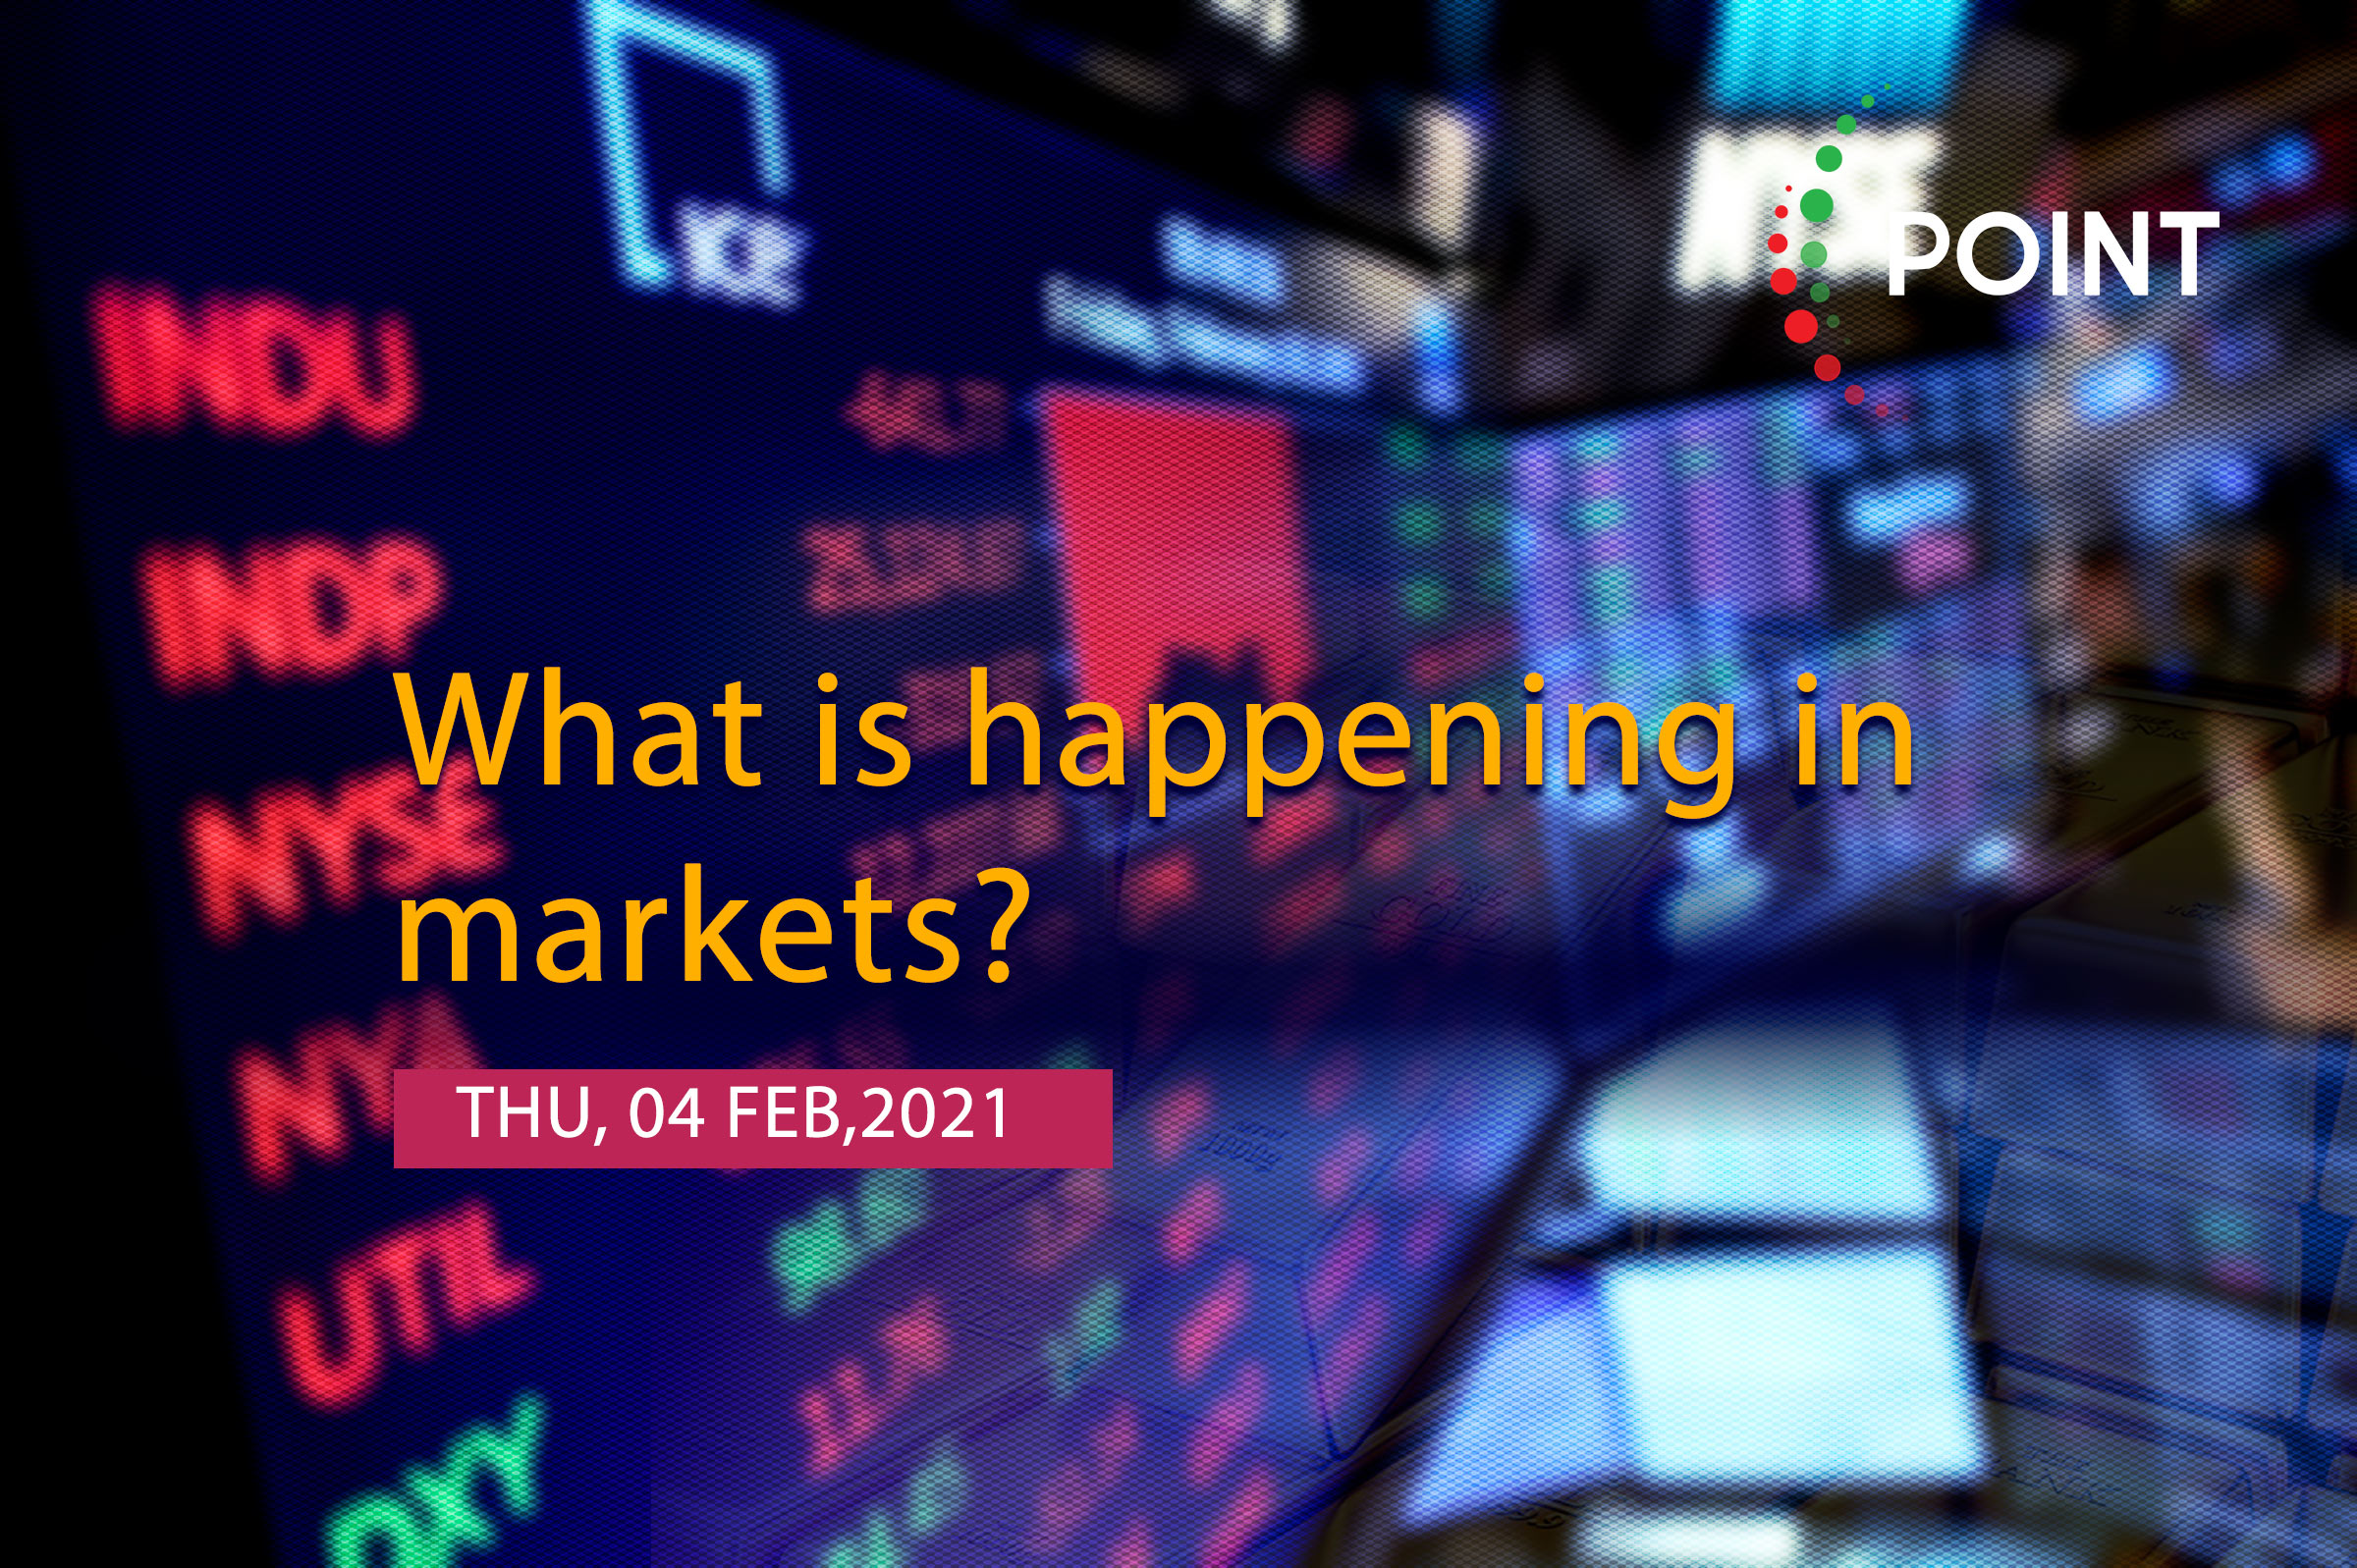 What's happening in the markets - Thursday 4 February 2021